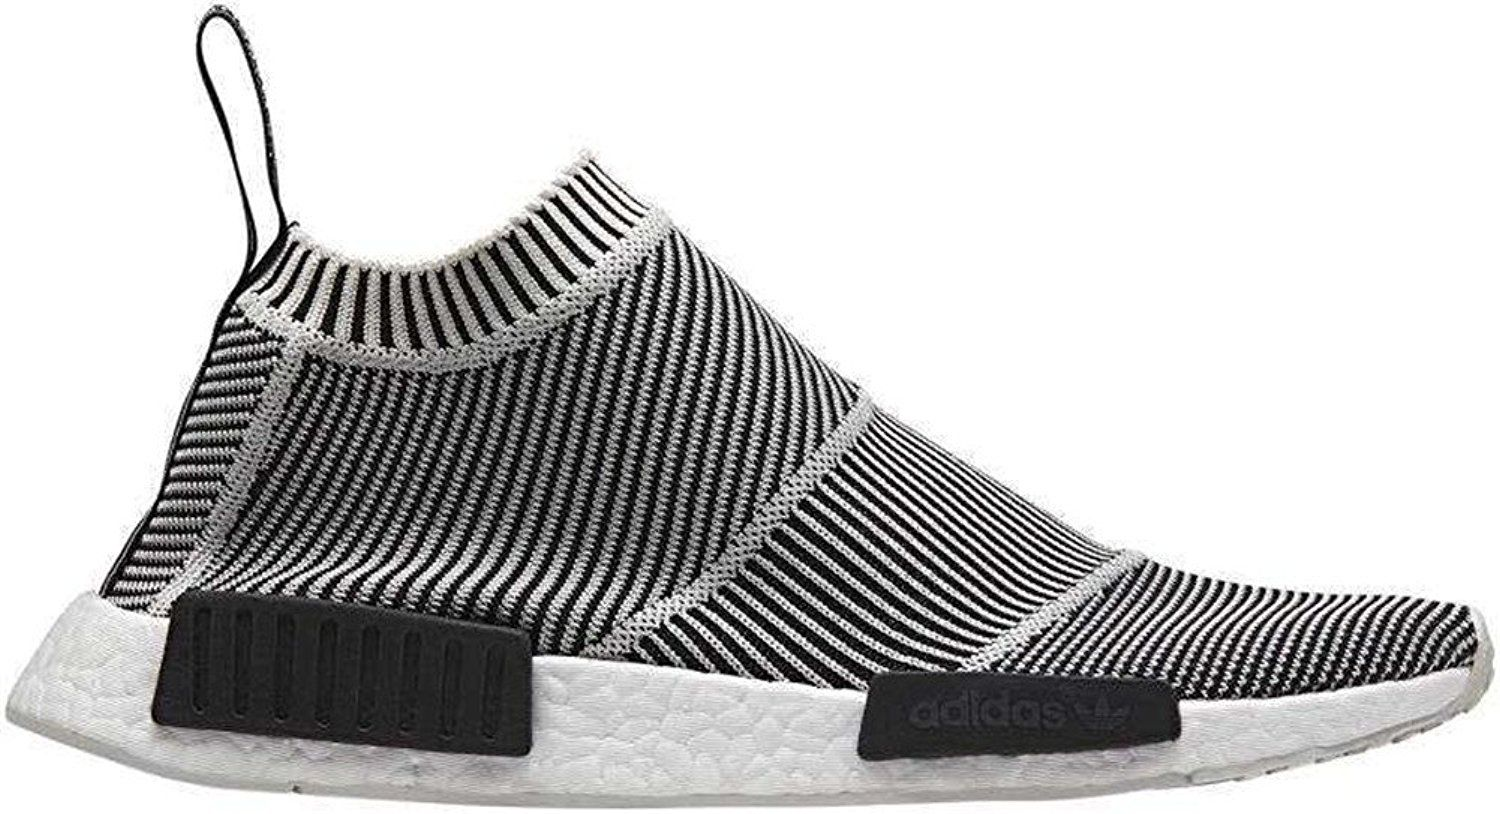 Adidas Originals Womens NMD Mid City Sock running Shoes S79150     See this  great product. 5c8808fa6